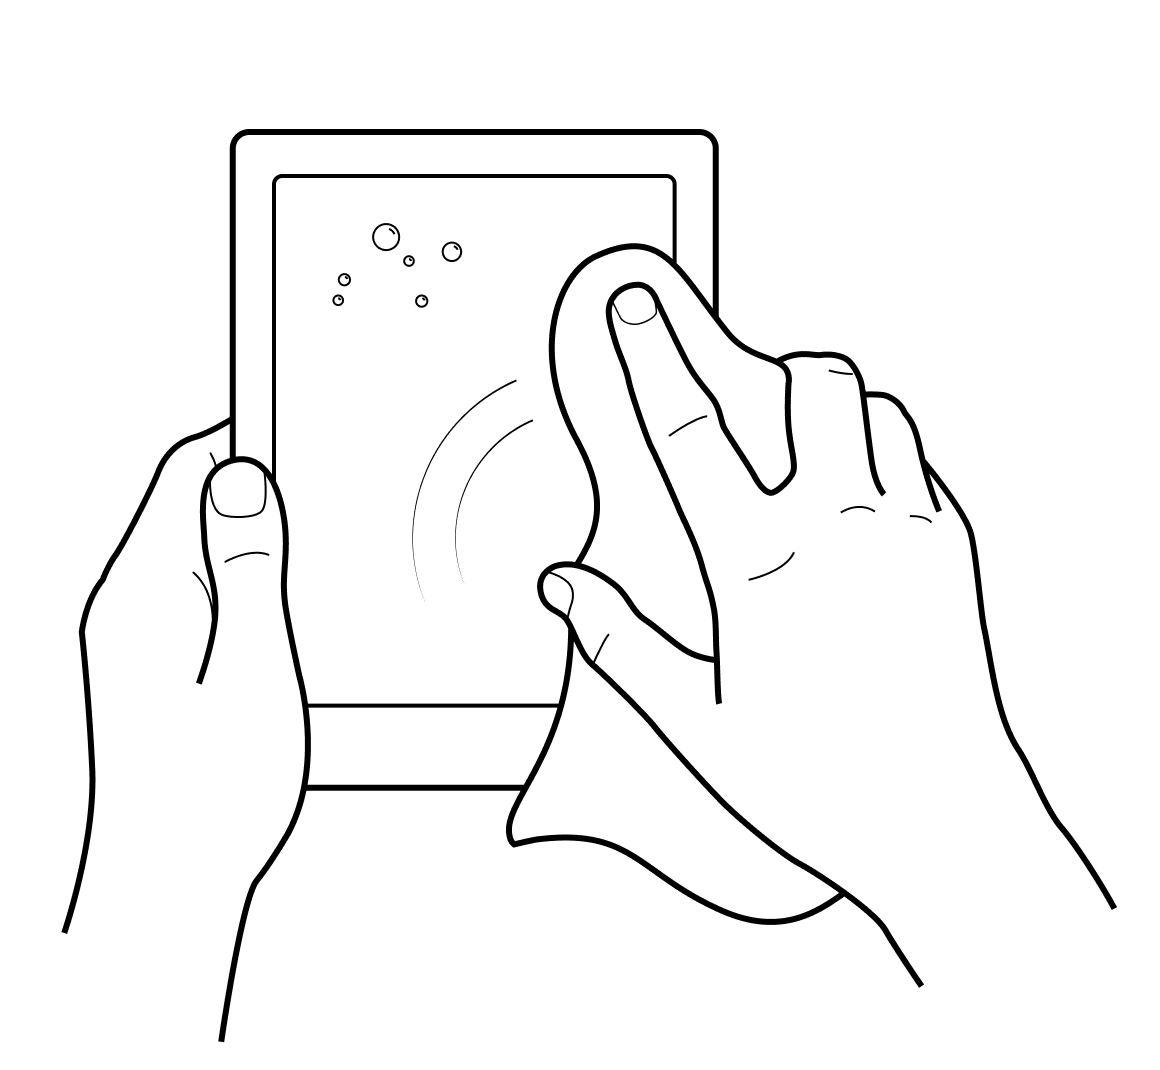 Screen_Shot_2020-01-30_at_10.37.51_AM.png